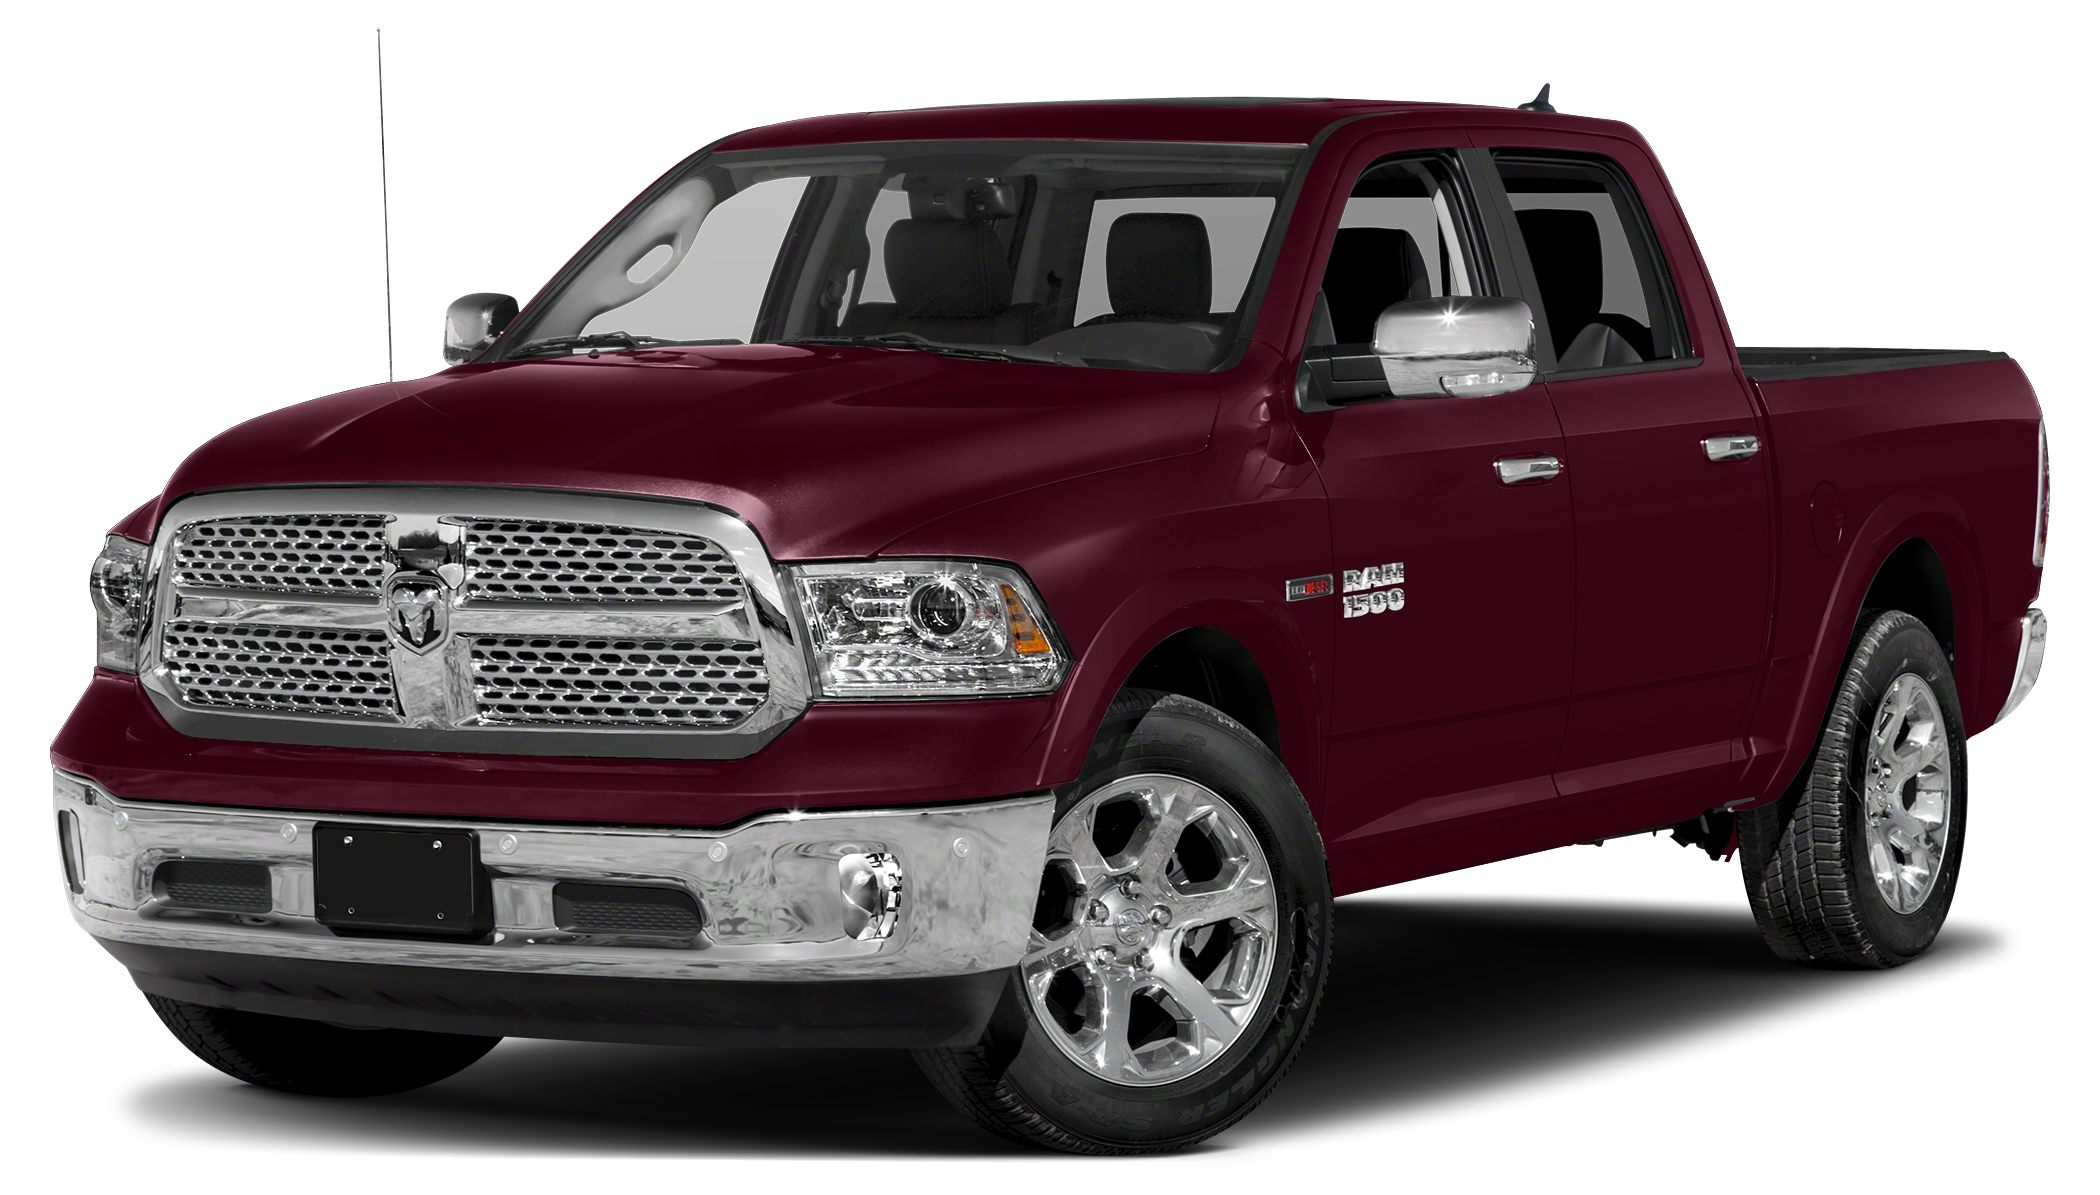 2016 RAM 1500 Laramie At Advantage Chrysler you know you are getting a safe and dependable vehicle